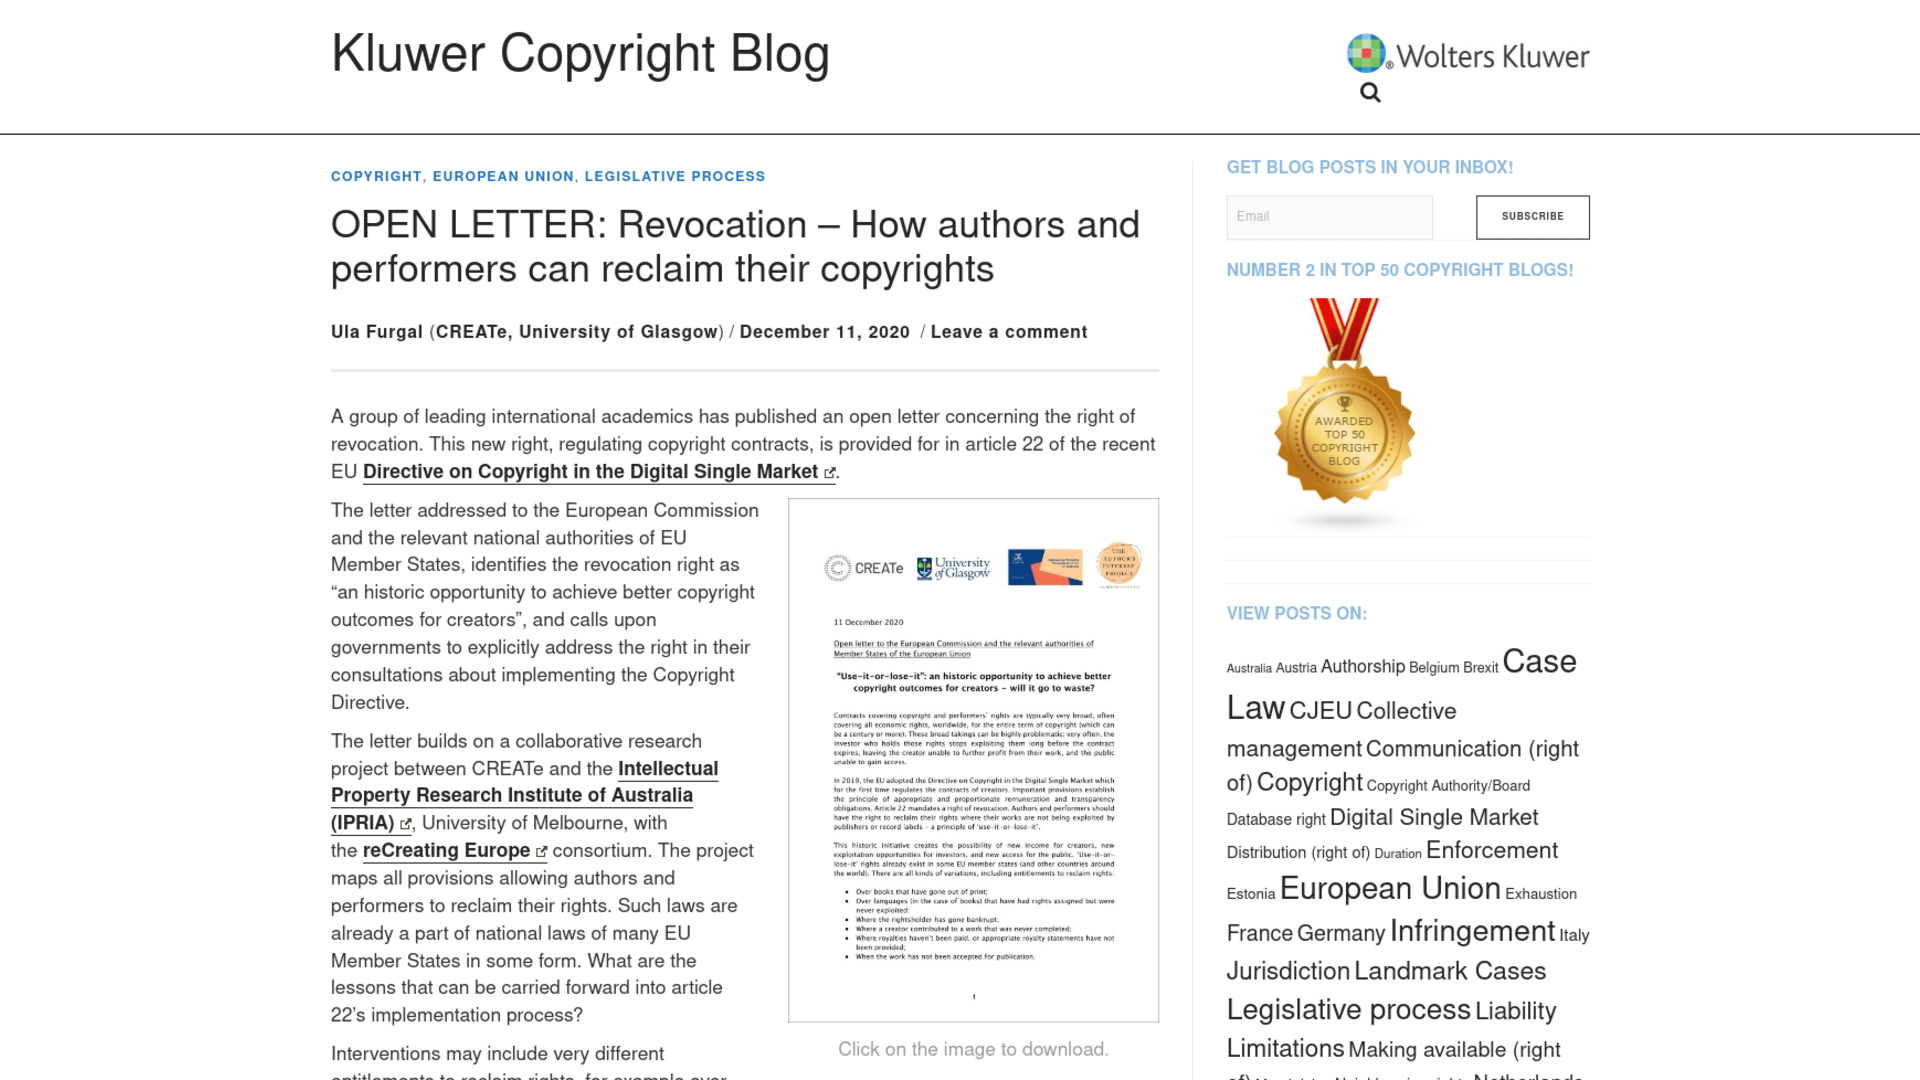 Fairness Rocks News OPEN LETTER: Revocation – How authors and performers can reclaim their copyrights